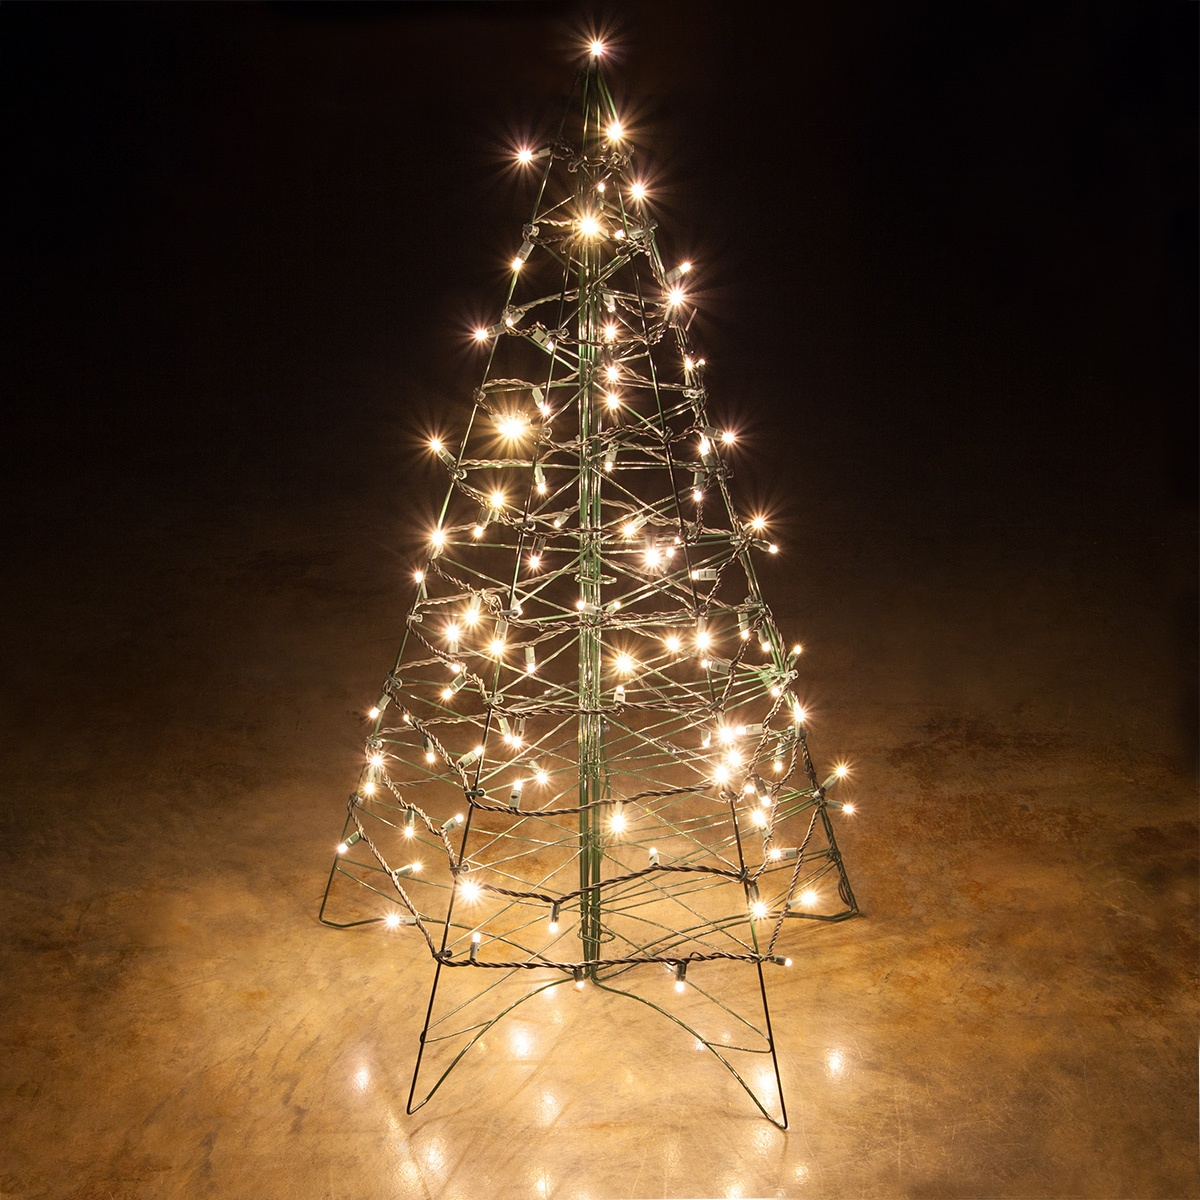 lighted warm white led outdoor christmas tree - White Outdoor Christmas Tree